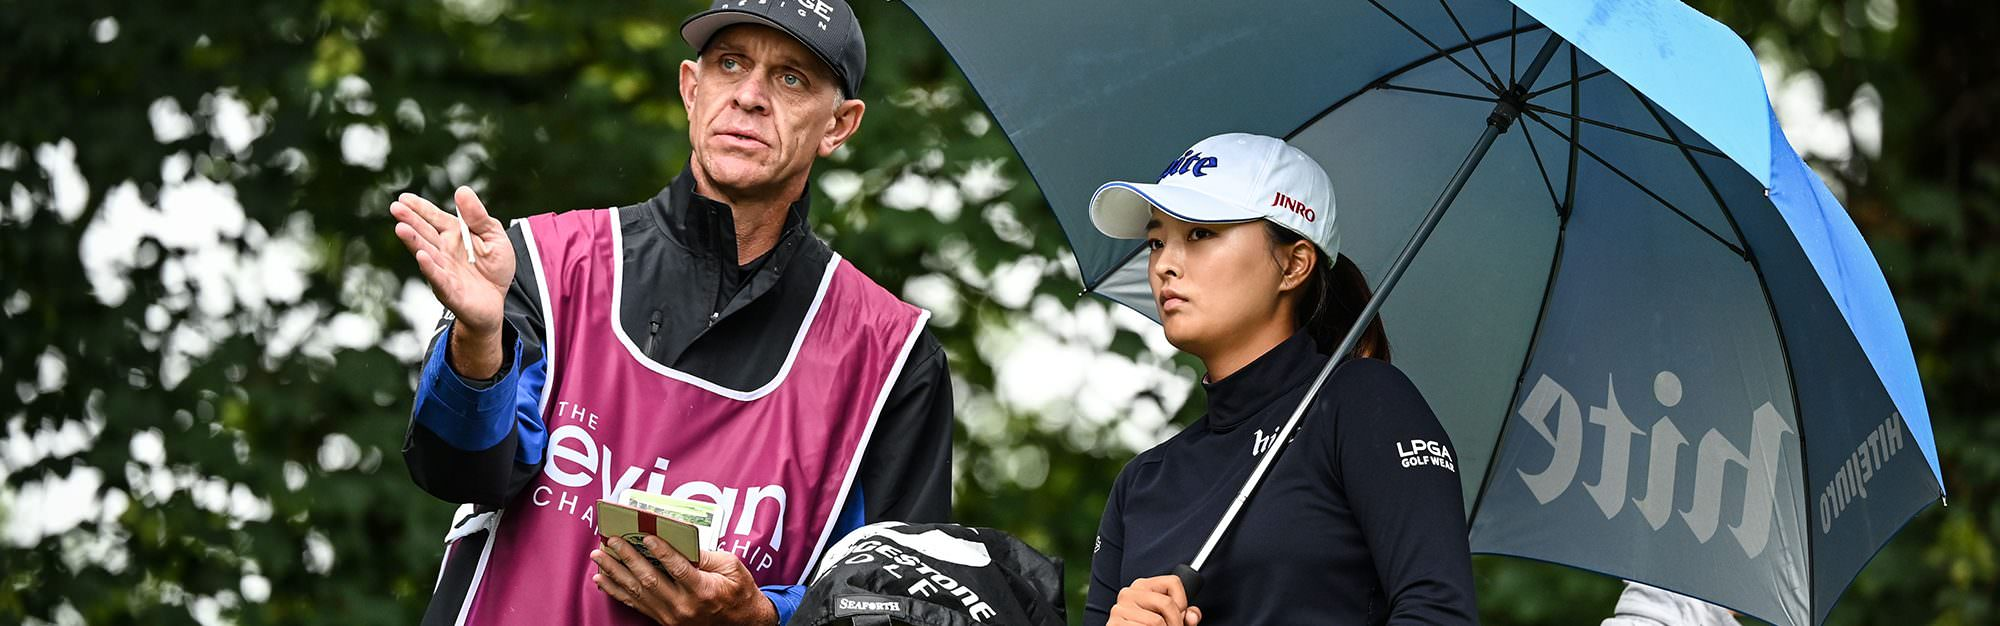 What clubs did Ko use to win the Evian Championship?